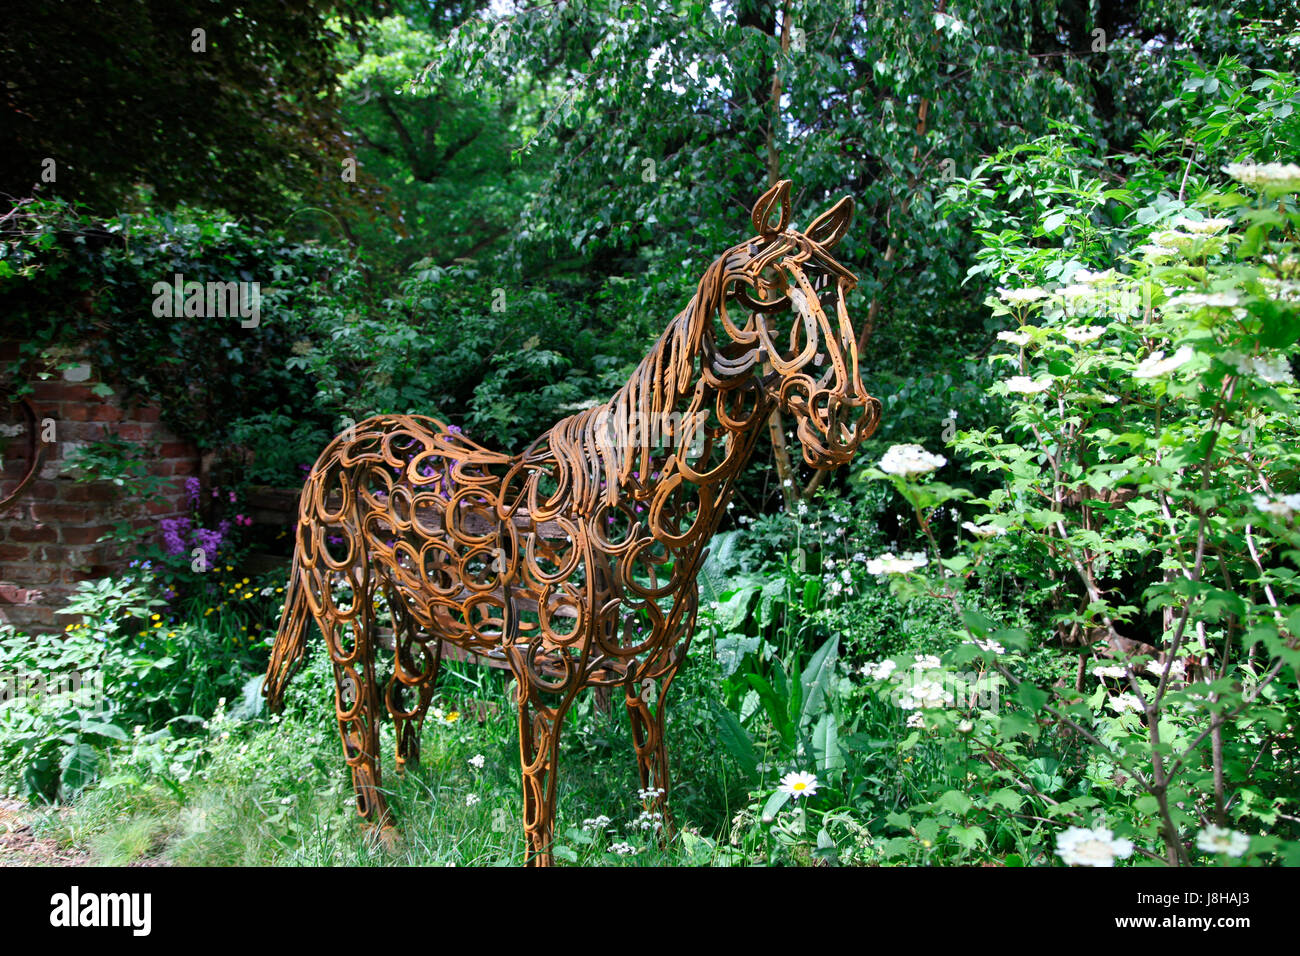 Horse constructed from horseshoes in the World Horse Welfare Garden, an Artisan Garden at RHS Chelsea Flower Show - Stock Image